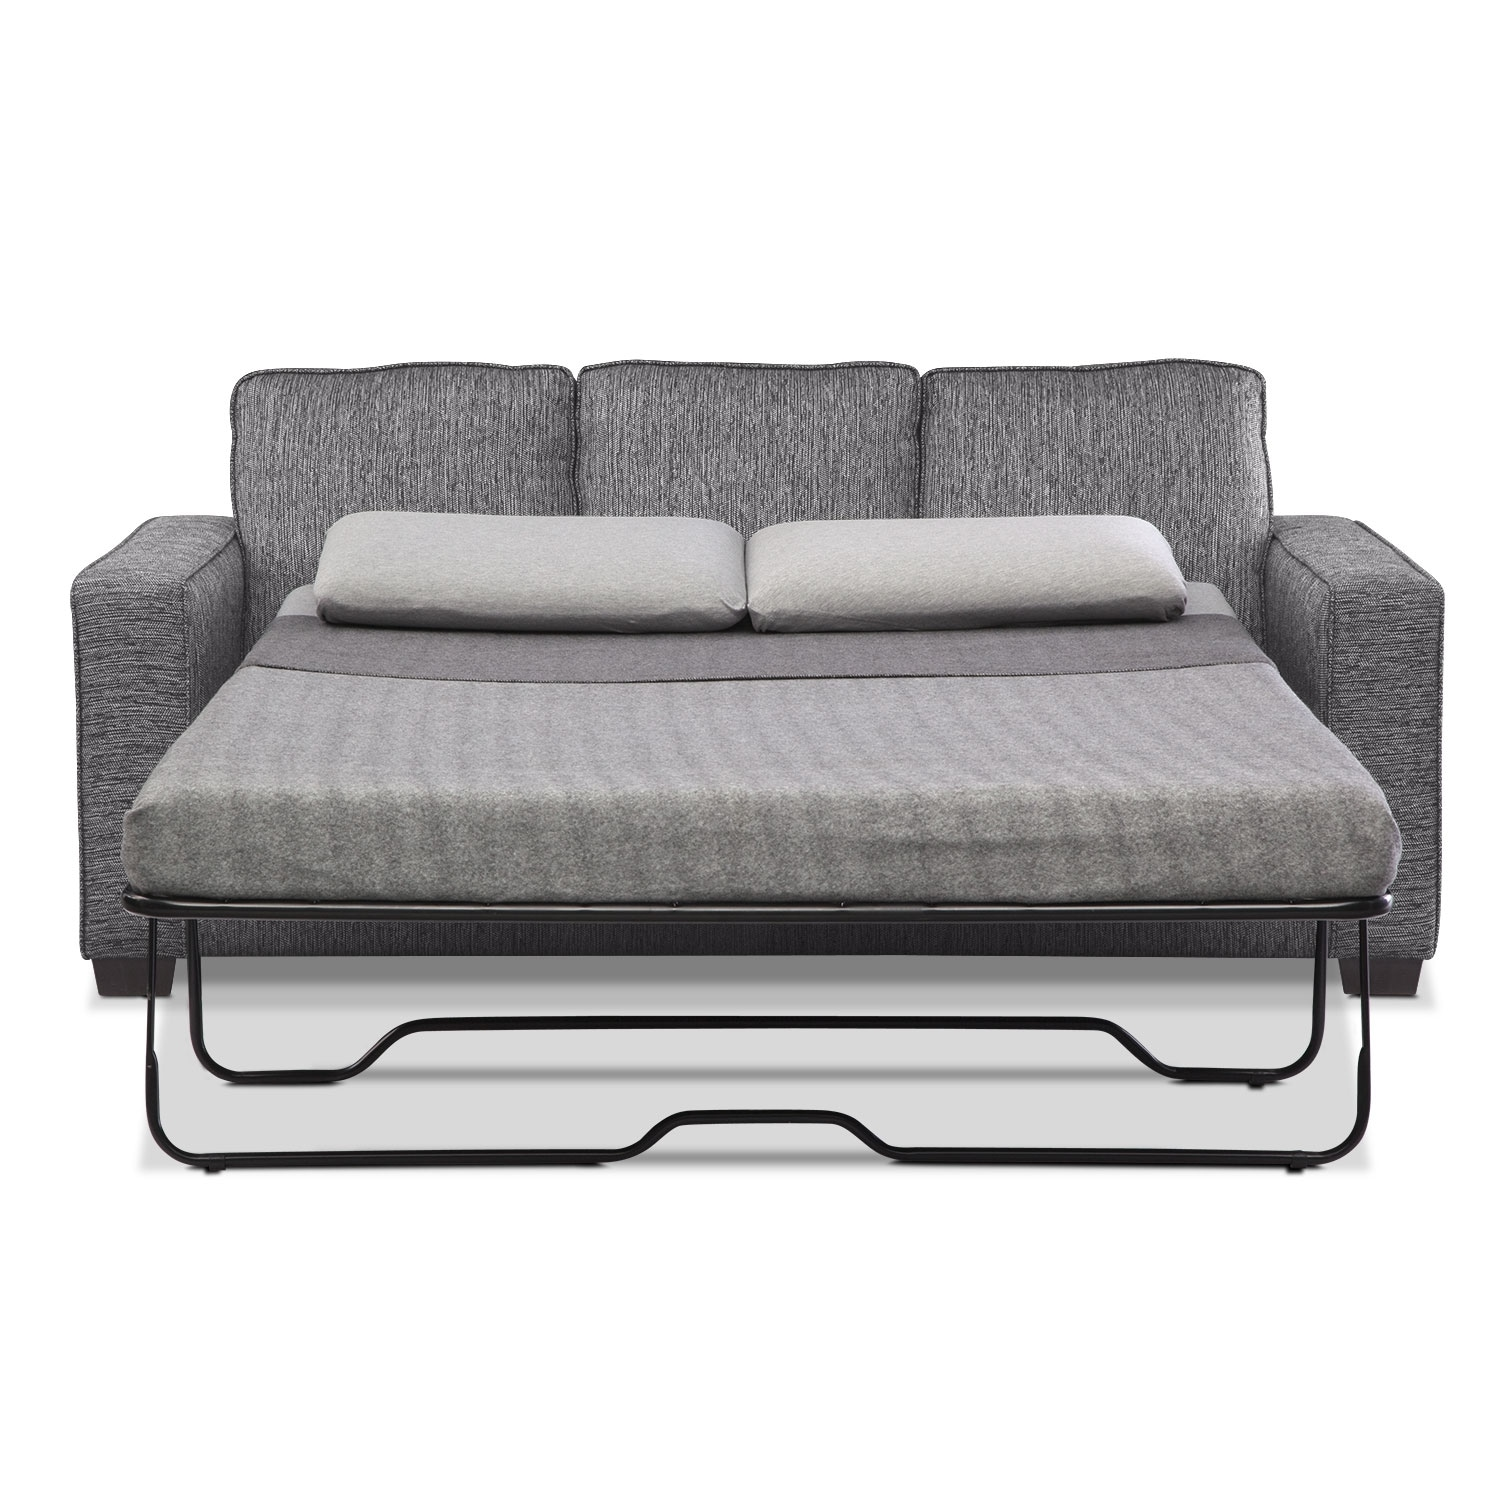 Sterling Memory Foam Sleeper Sofa With Chaise Charcoal